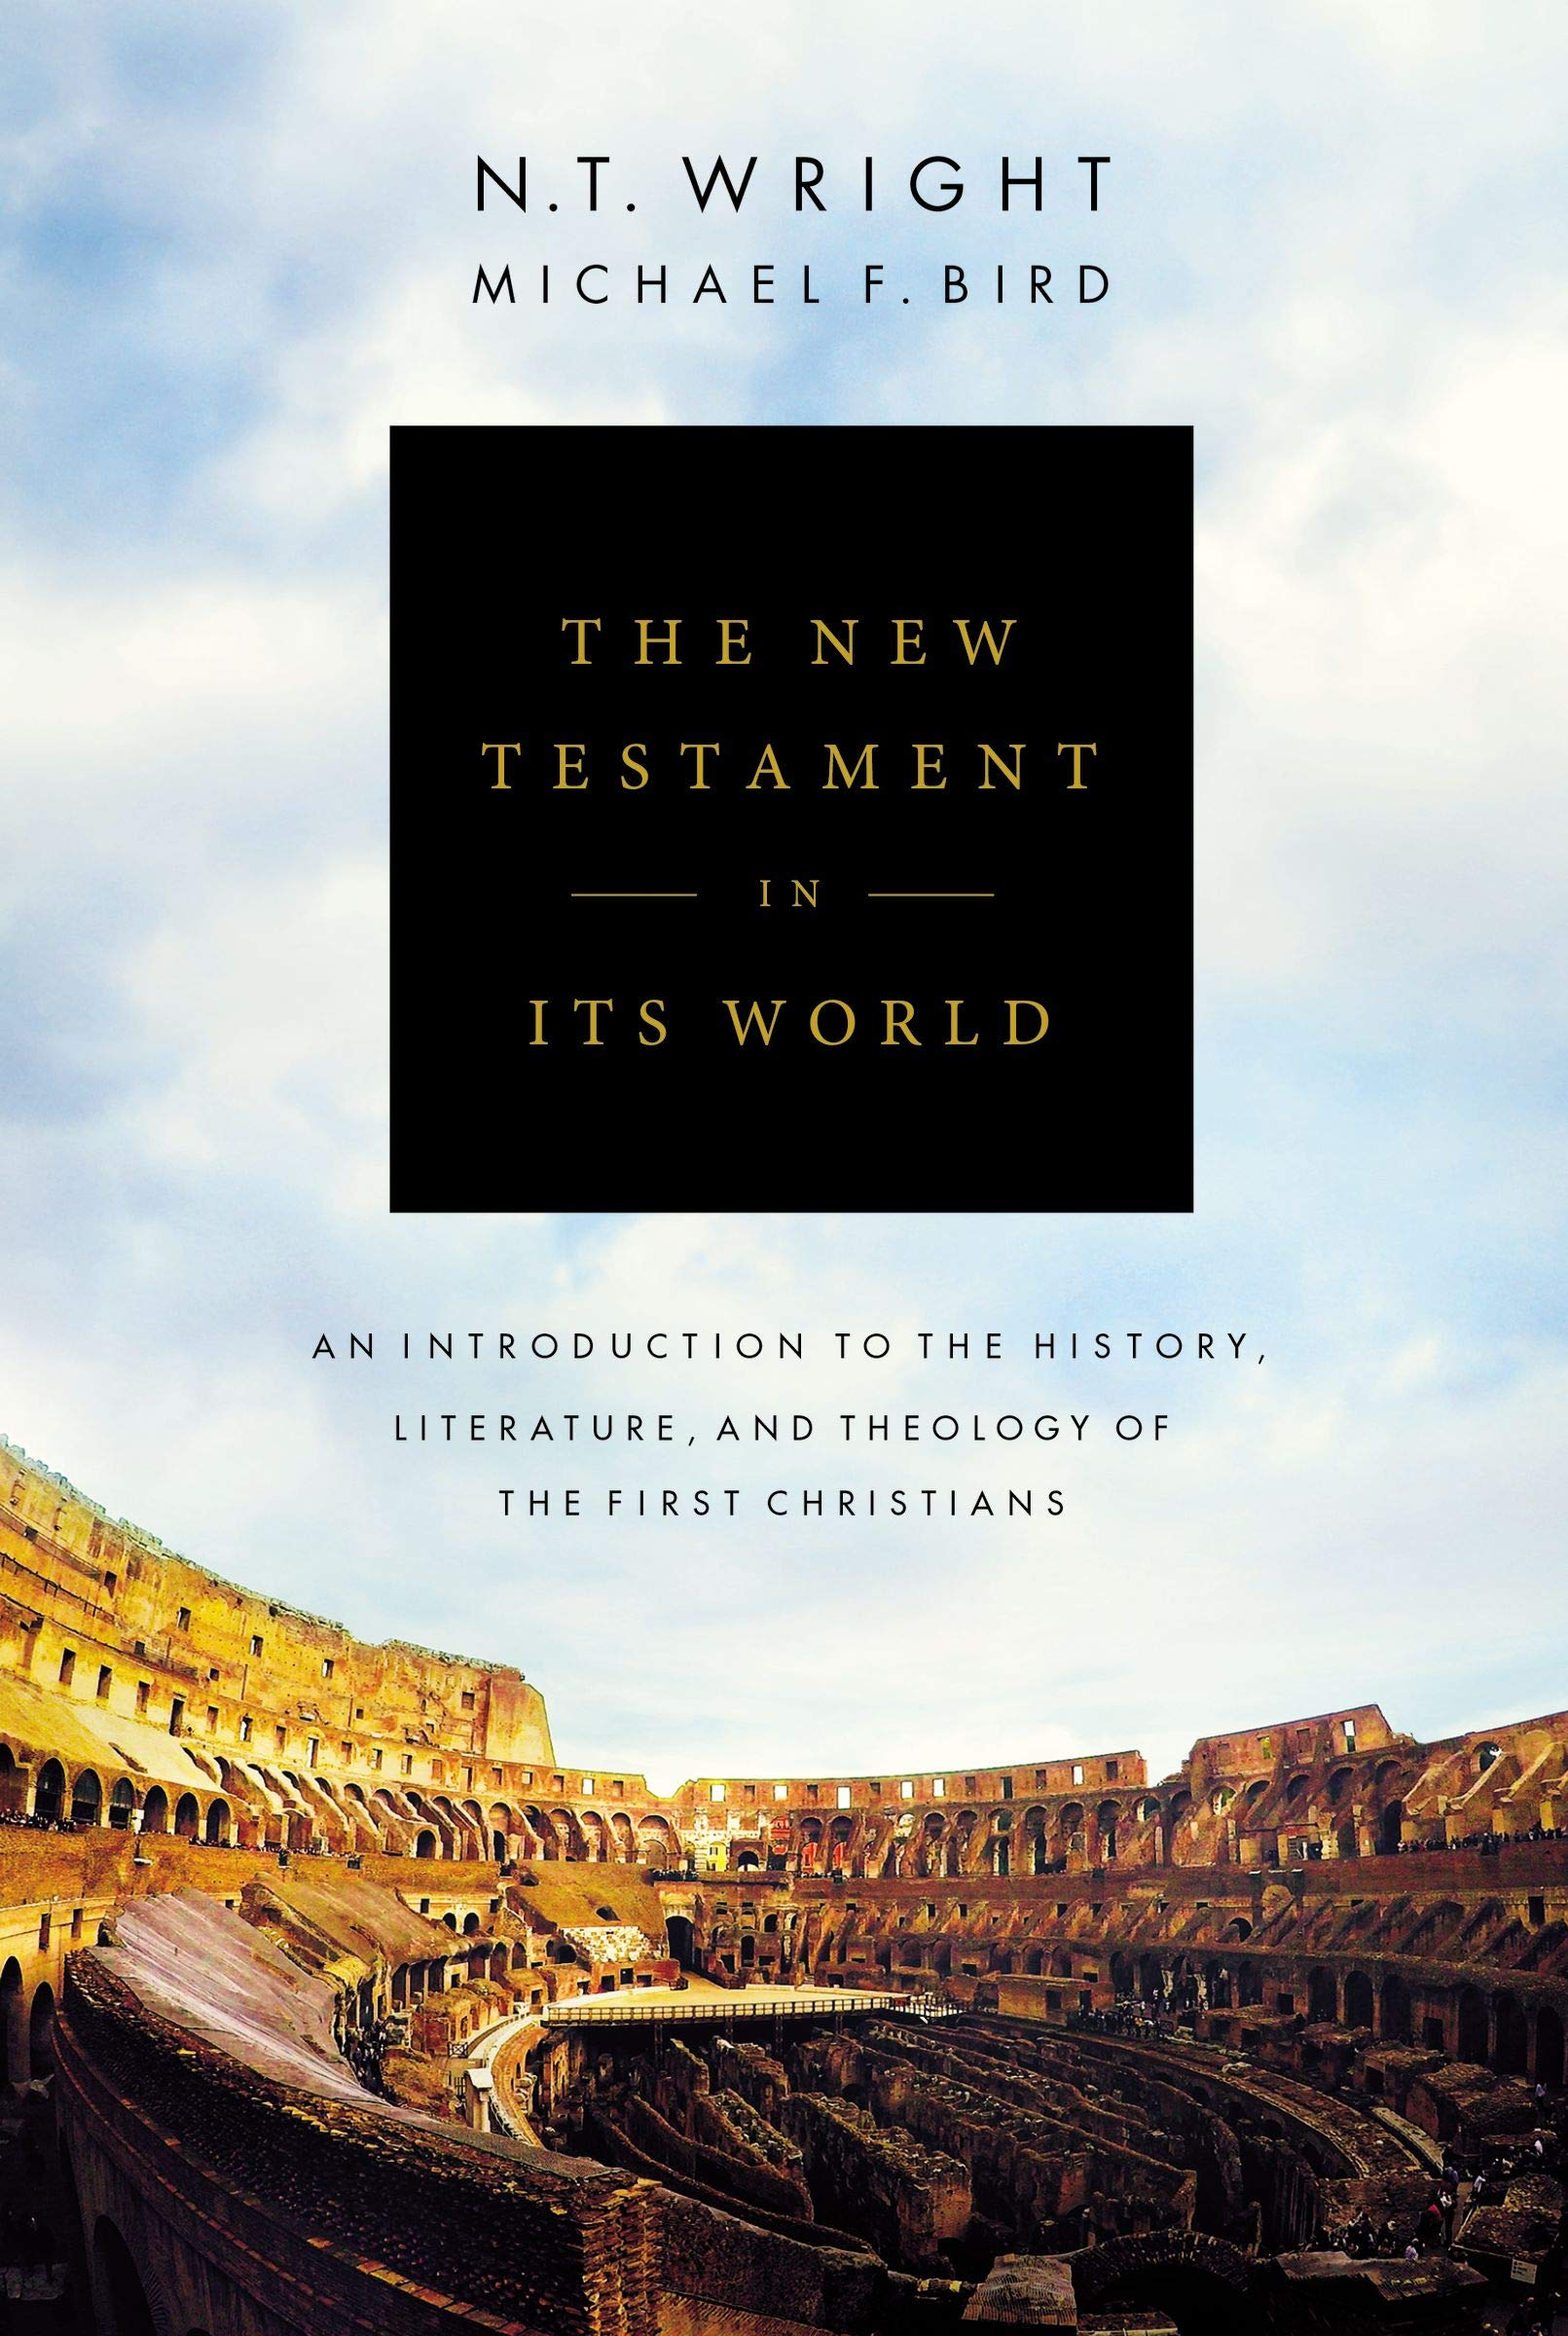 Image result for nt wright book, the new testament and its world